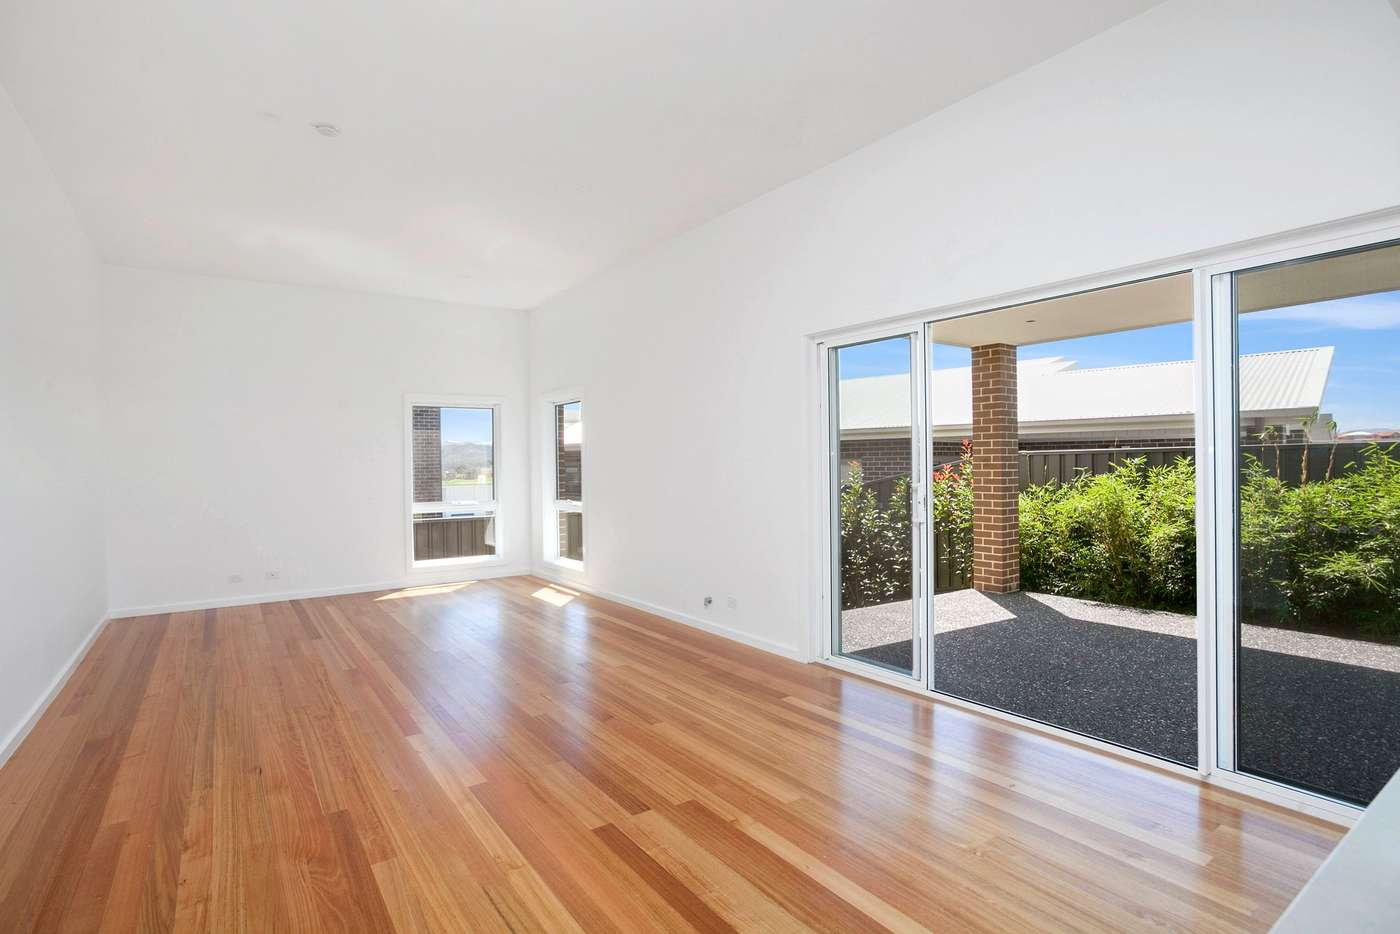 Sixth view of Homely house listing, 10 National Avenue, Shell Cove NSW 2529